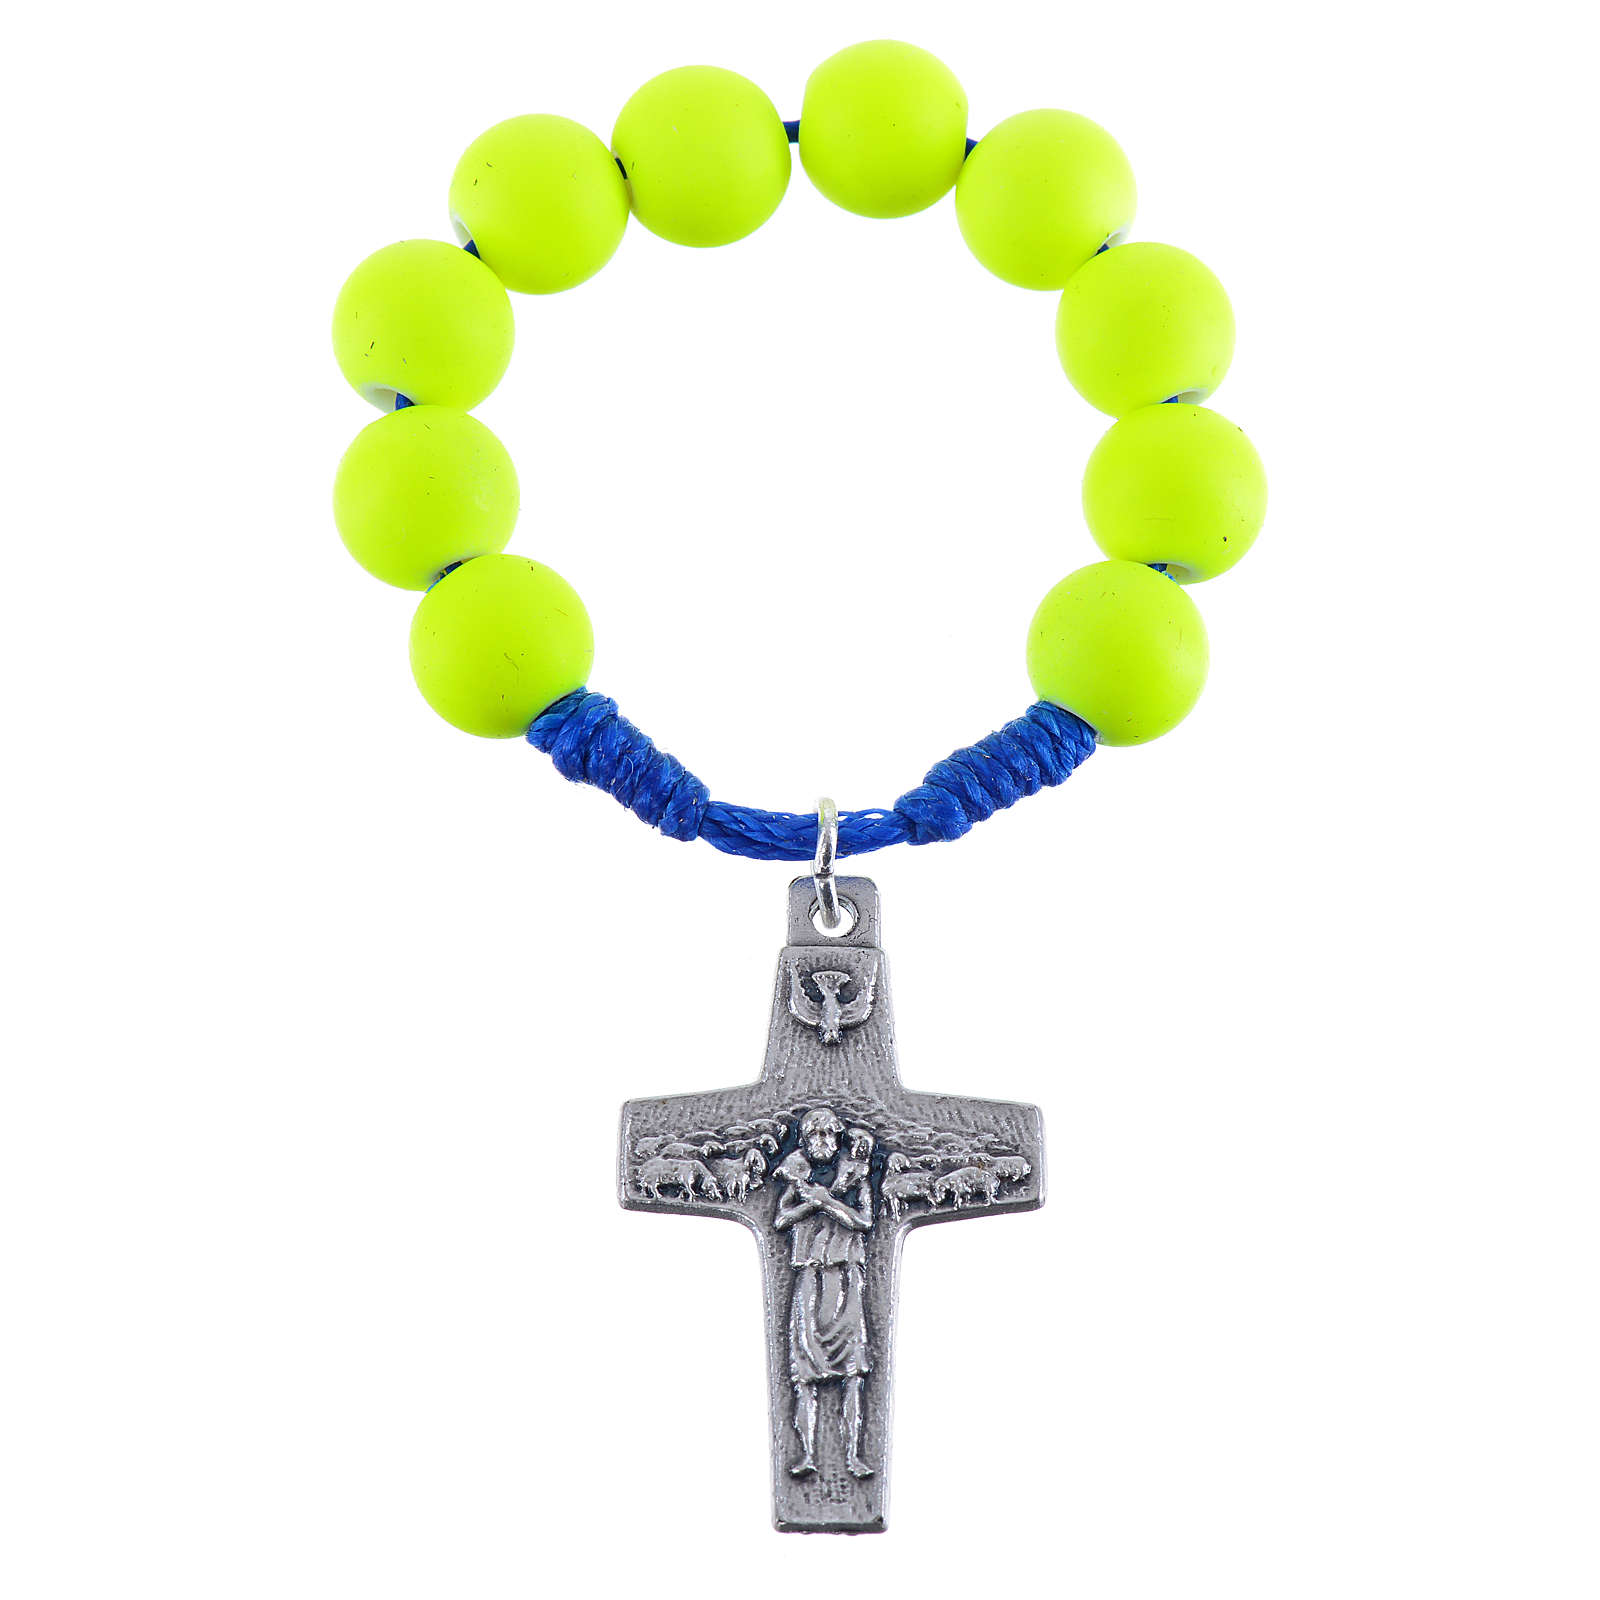 Single decade rosary beads in yellow fimo, Pope Francis 4